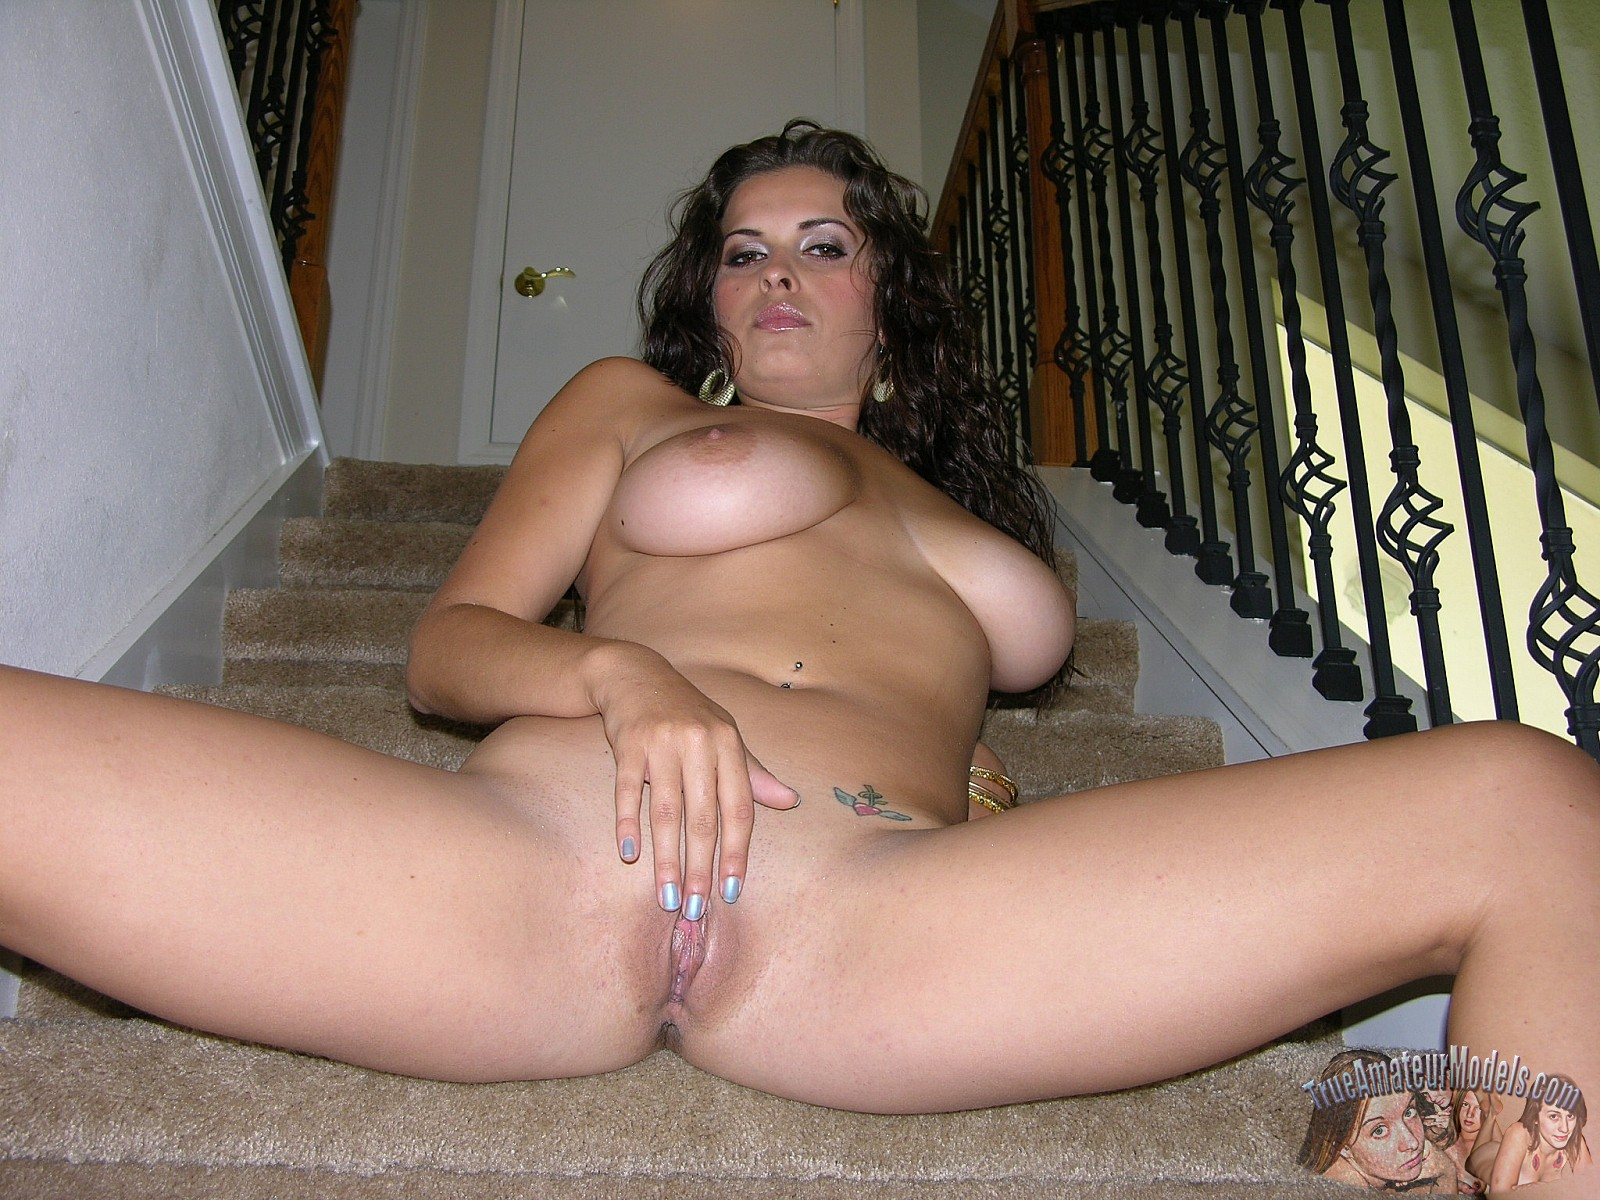 Hairy Native American Pussy Cheap showing xxx images for native american hairy pussy exposed xxx